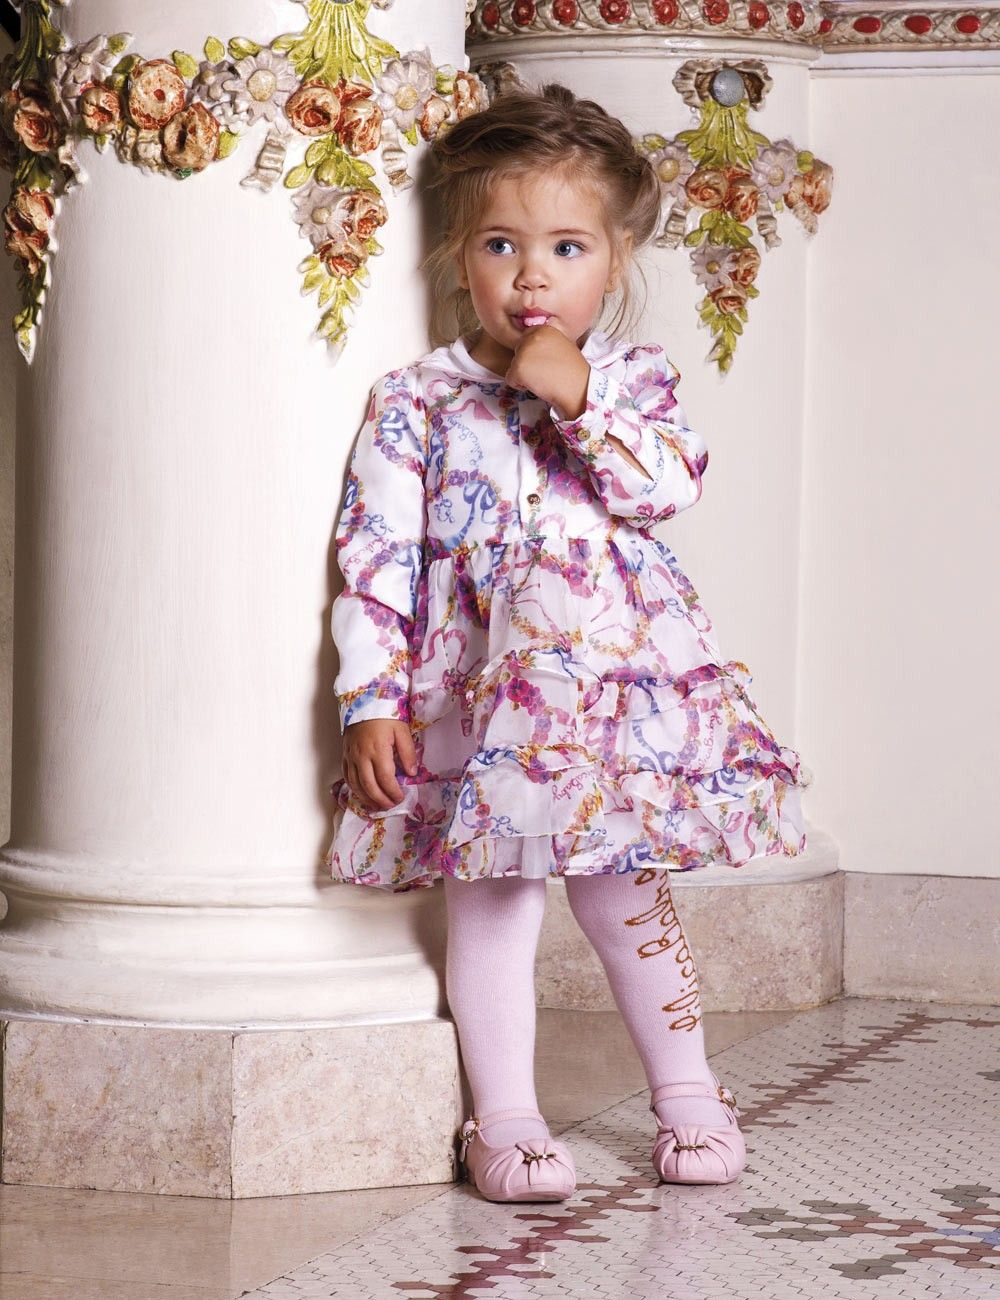 Childrenswear Lilica Ripilica Spring-Summer  1000+ images about Kidswear on Pinterest | Runway, Little girl poses and Sao paulo